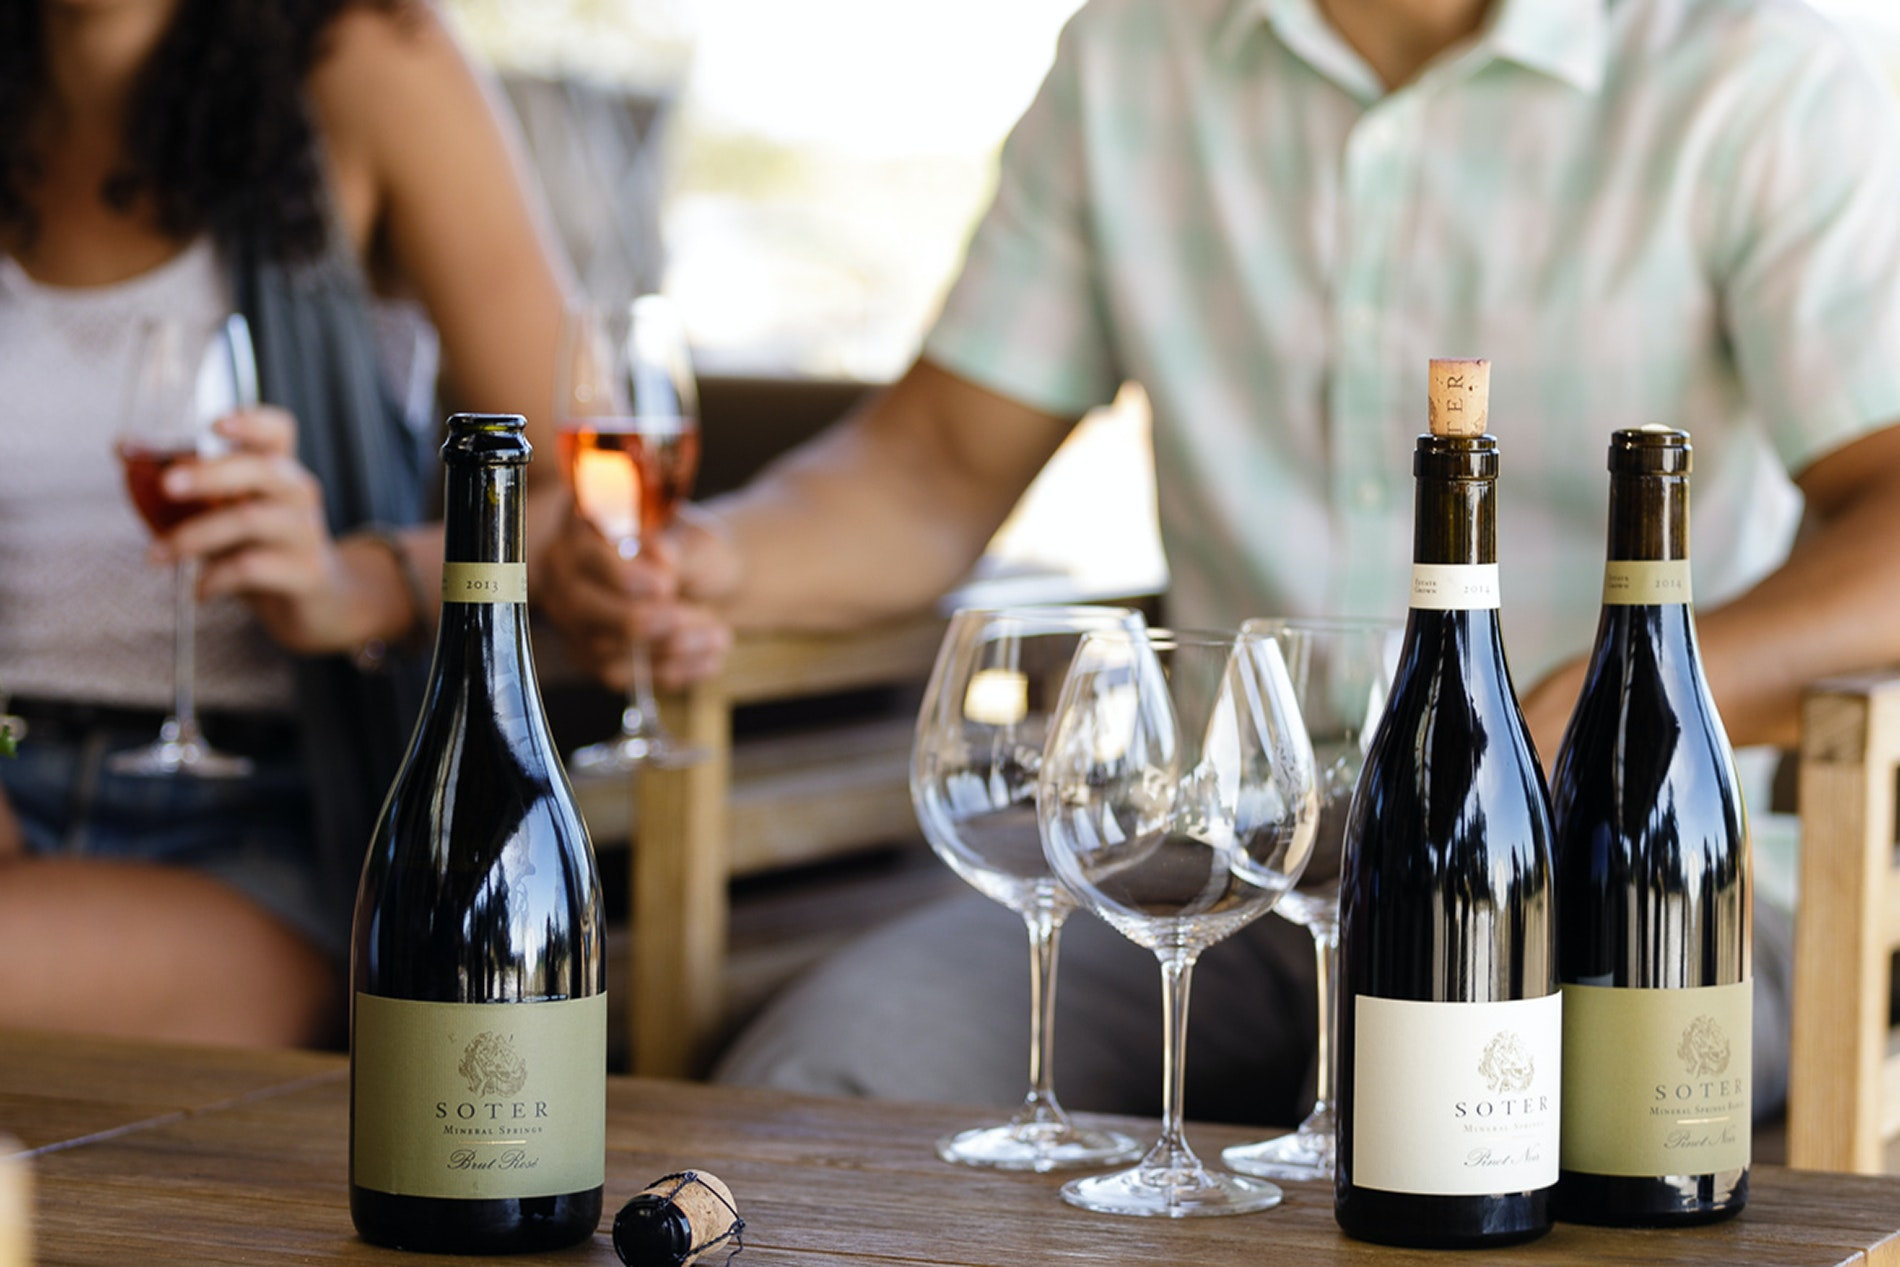 Known for its sustainable viticultural practices, Soter Vineyards welcomes winery visitors to pop in and sample a flight of its latest releases.